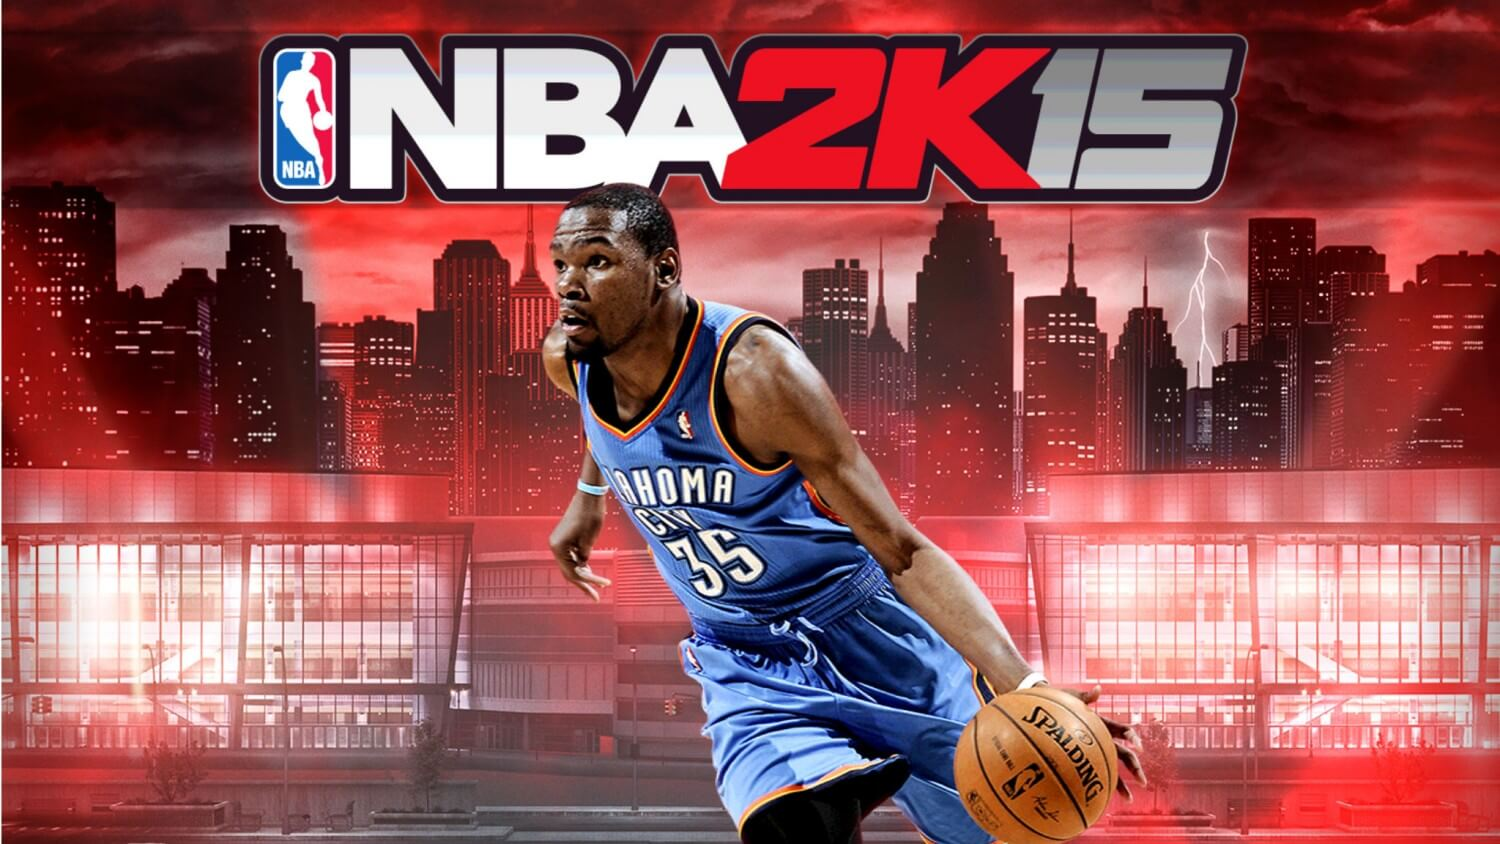 NBA 2K15 Free April 24-27 for Xbox Live Gold Members